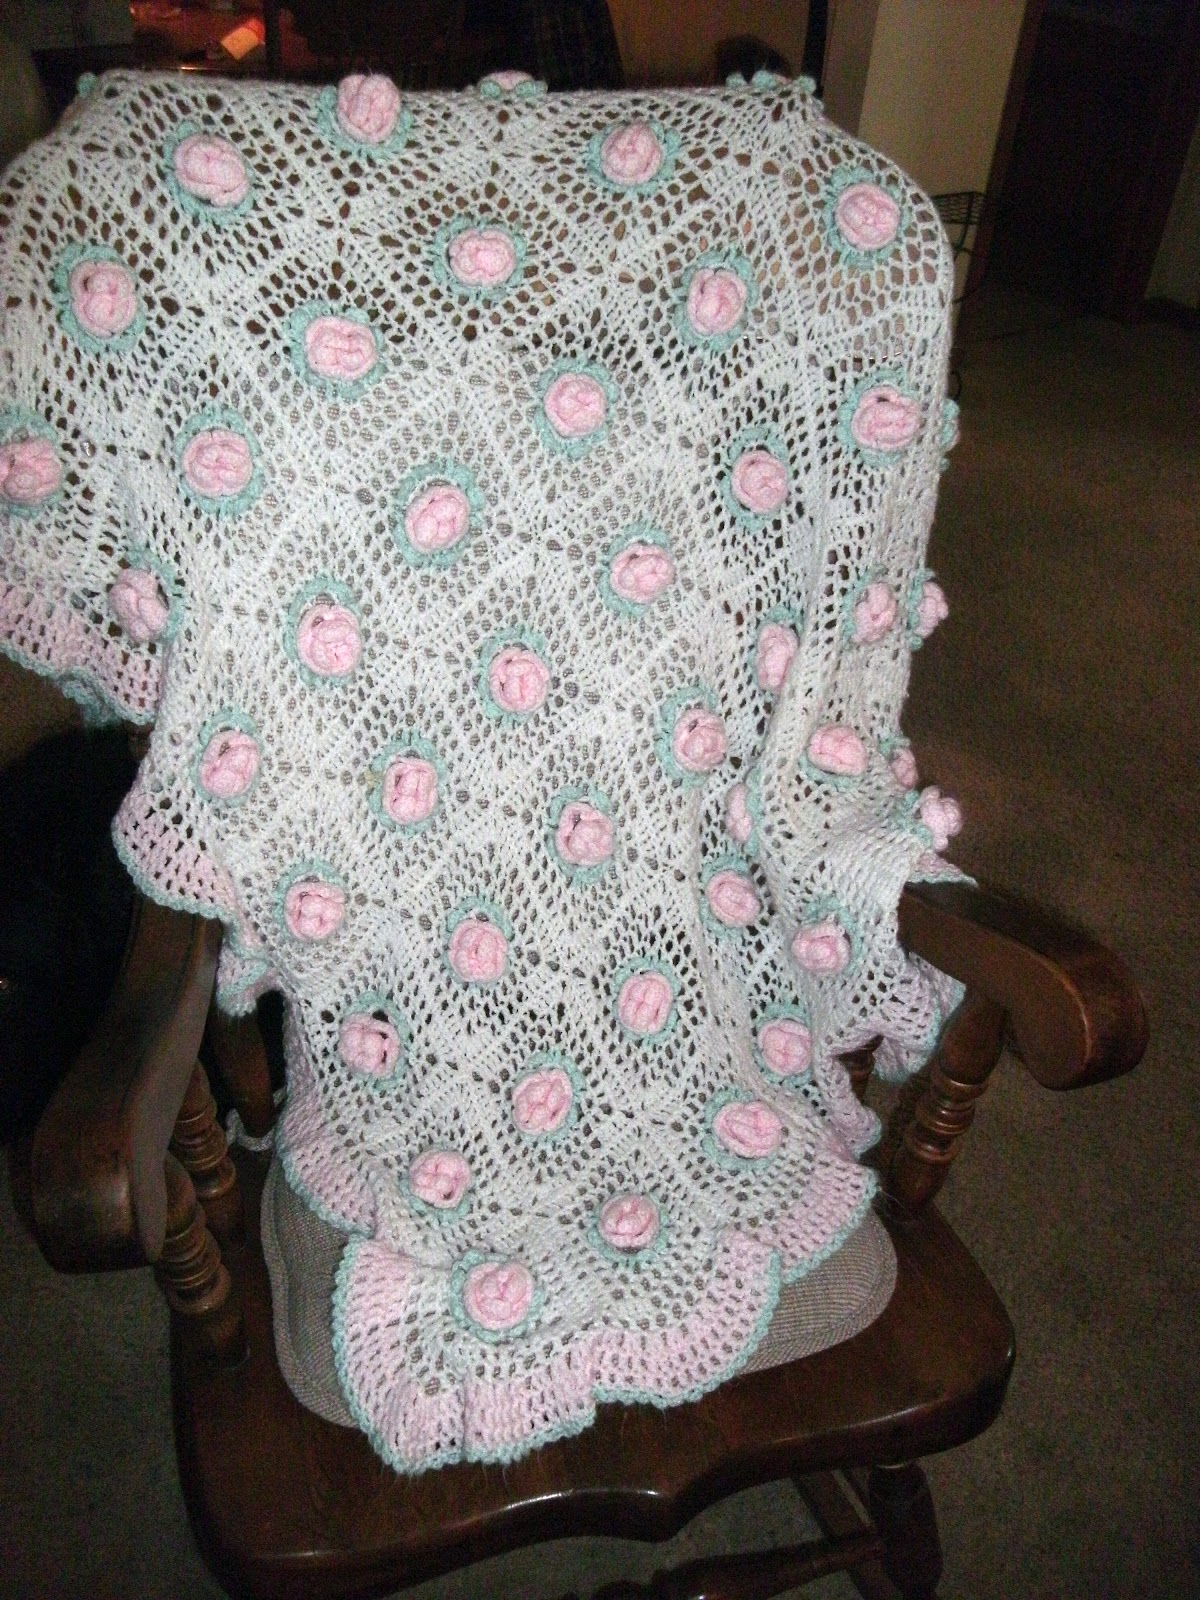 Crocheting A Baby Blanket : The Scrappers Boutique: crocheted baby blanket